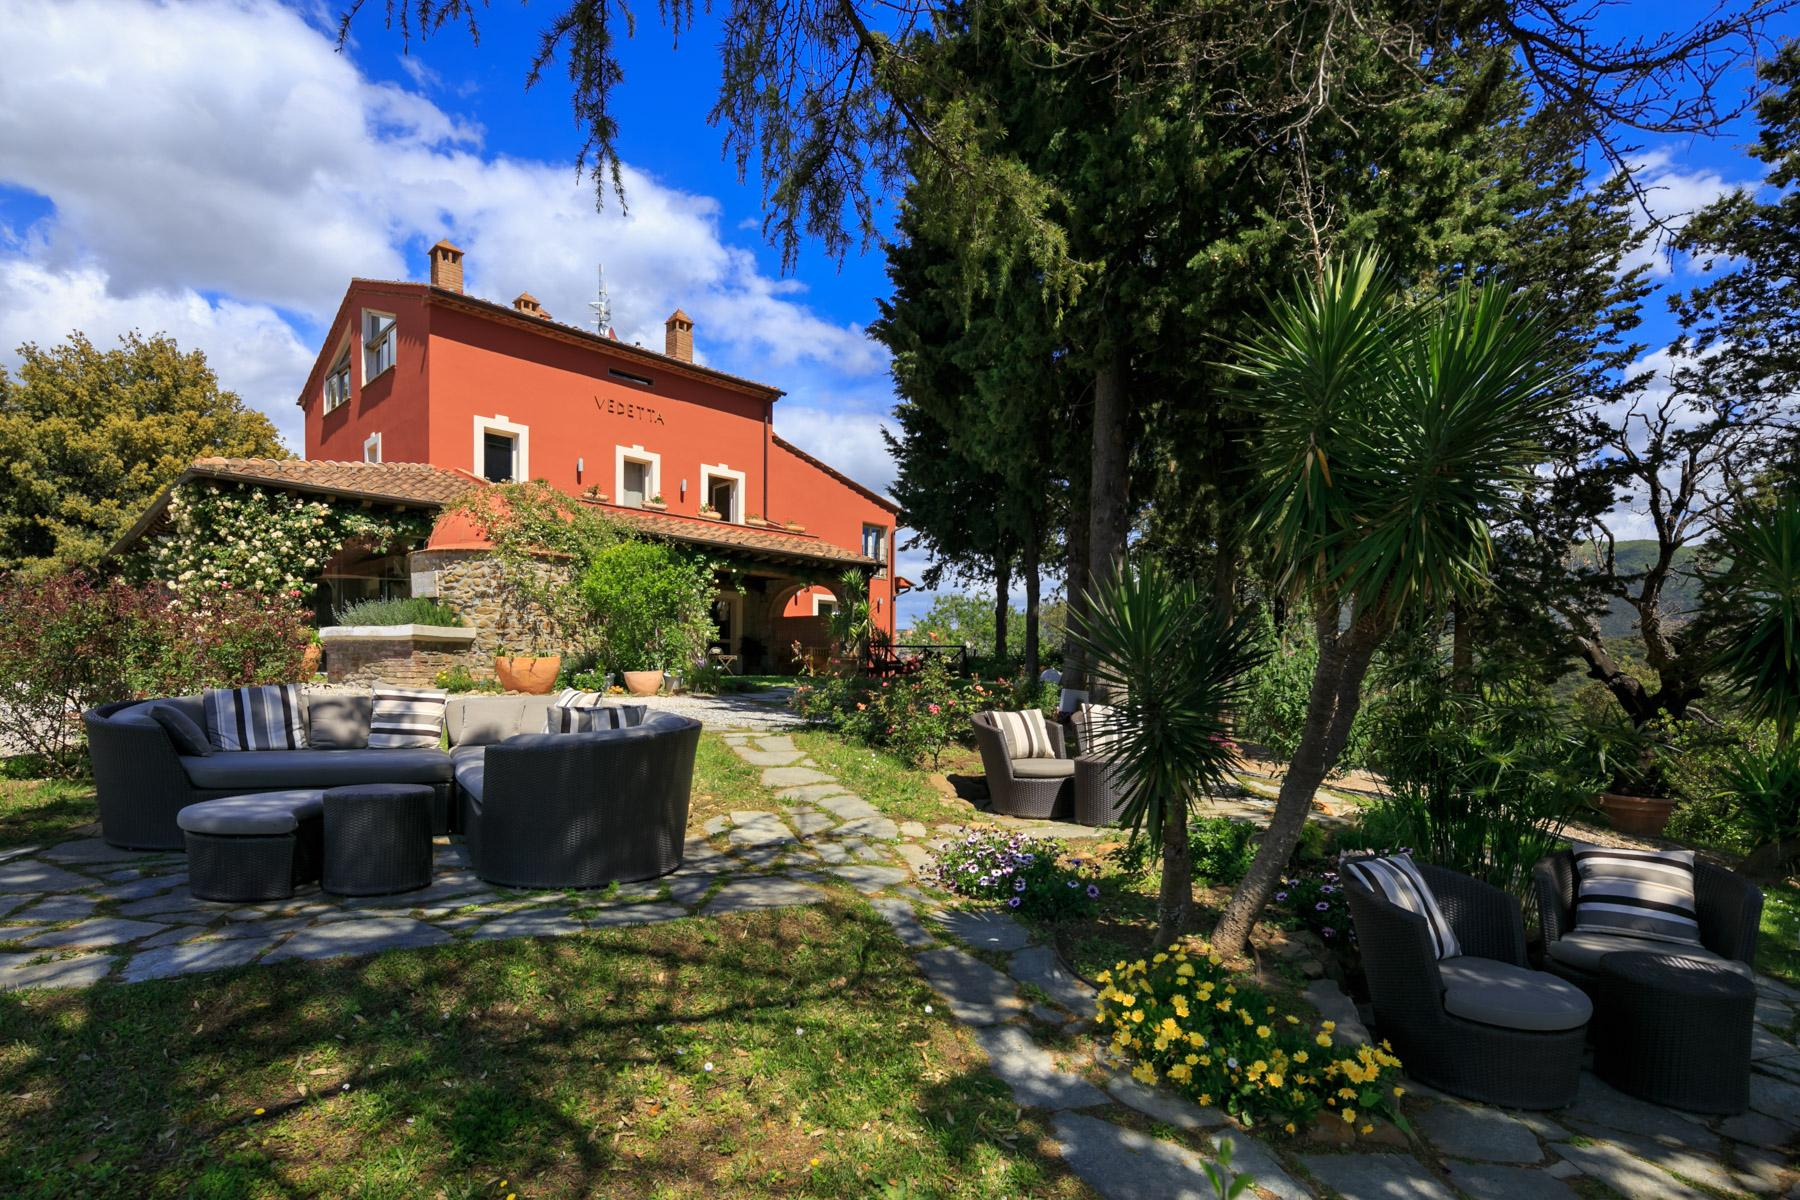 Historic Villa with stunning views over the Gulf of Scarlino - 1